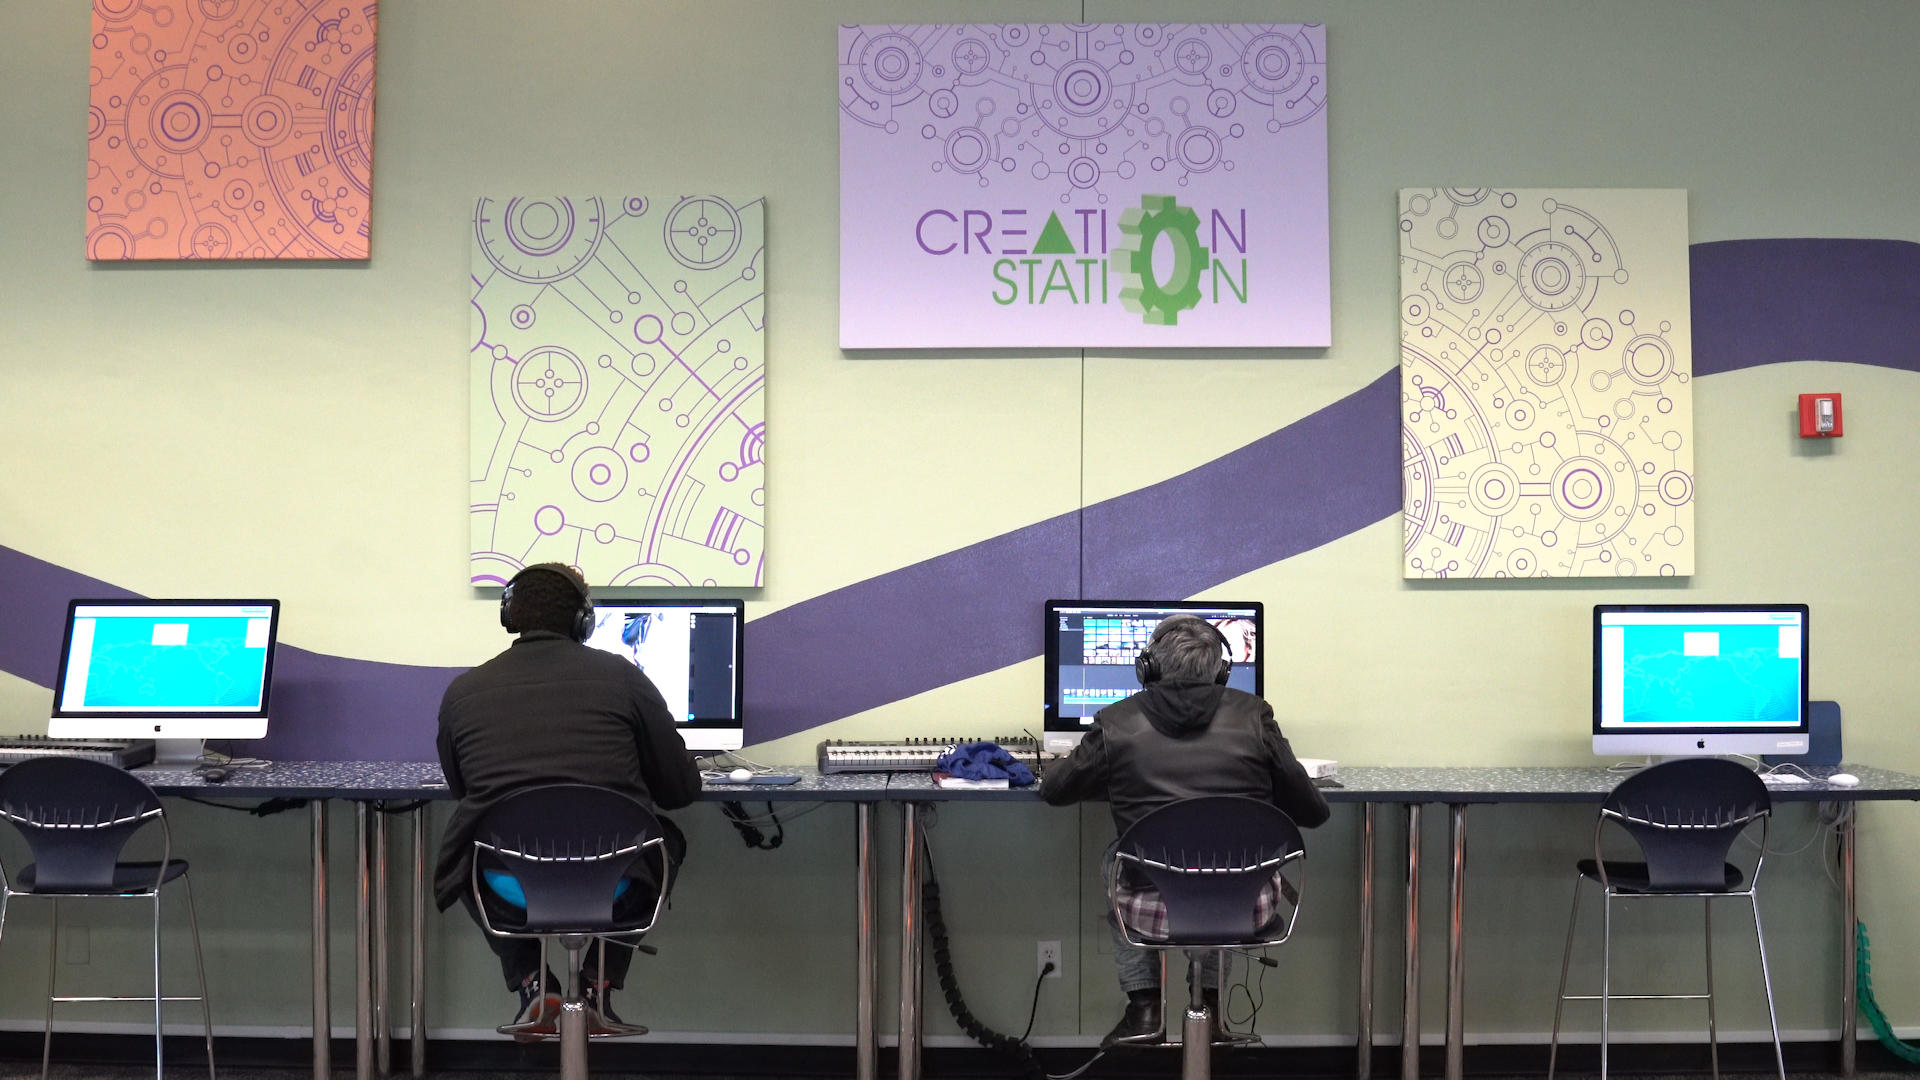 Video: This library puts tech in the hands of its patrons